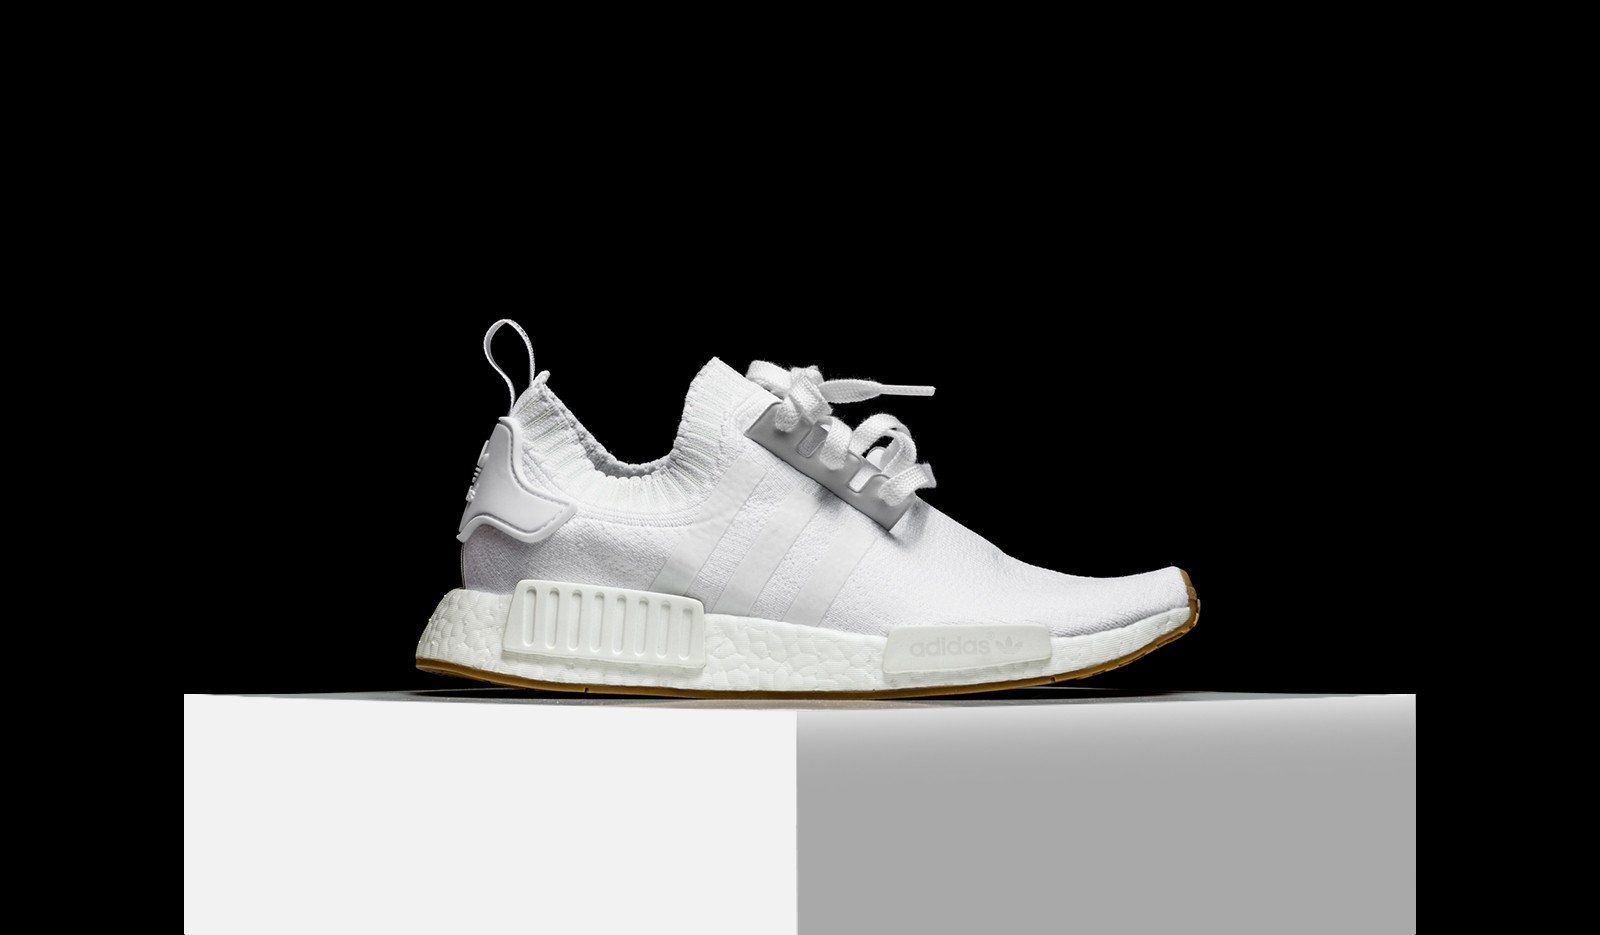 lowest price 171ad 5003f Adidas NMD r1 Primeknit blanco BY1888. Adidas Originals 2017